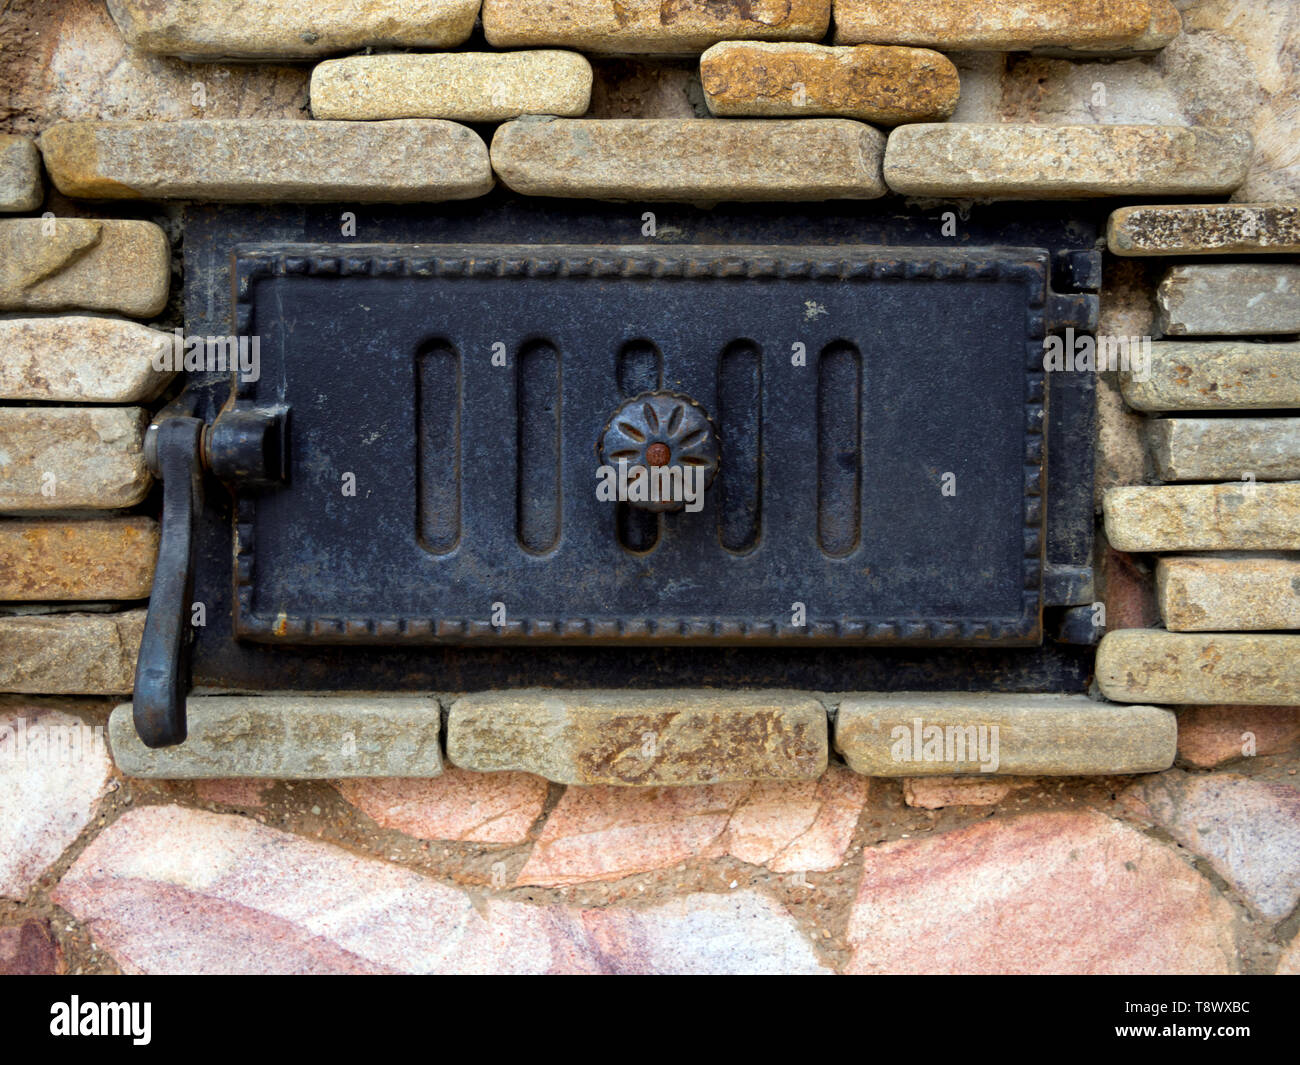 Blown stone stove with a decorative cast iron door - Stock Image